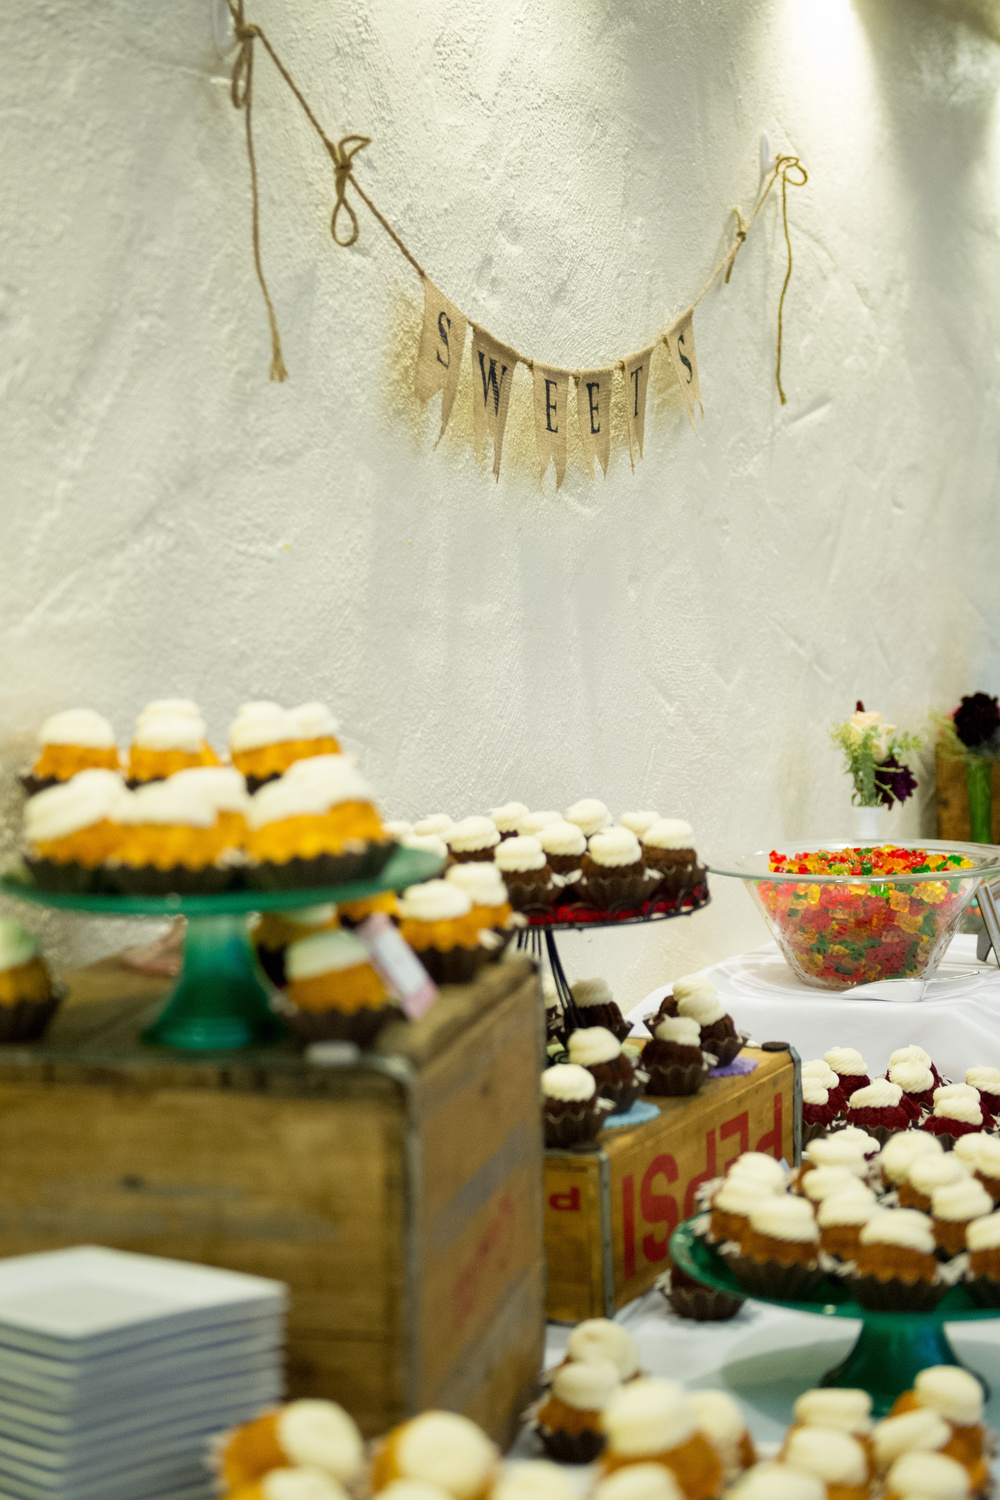 Dessert table by Nothing Bundt Cake